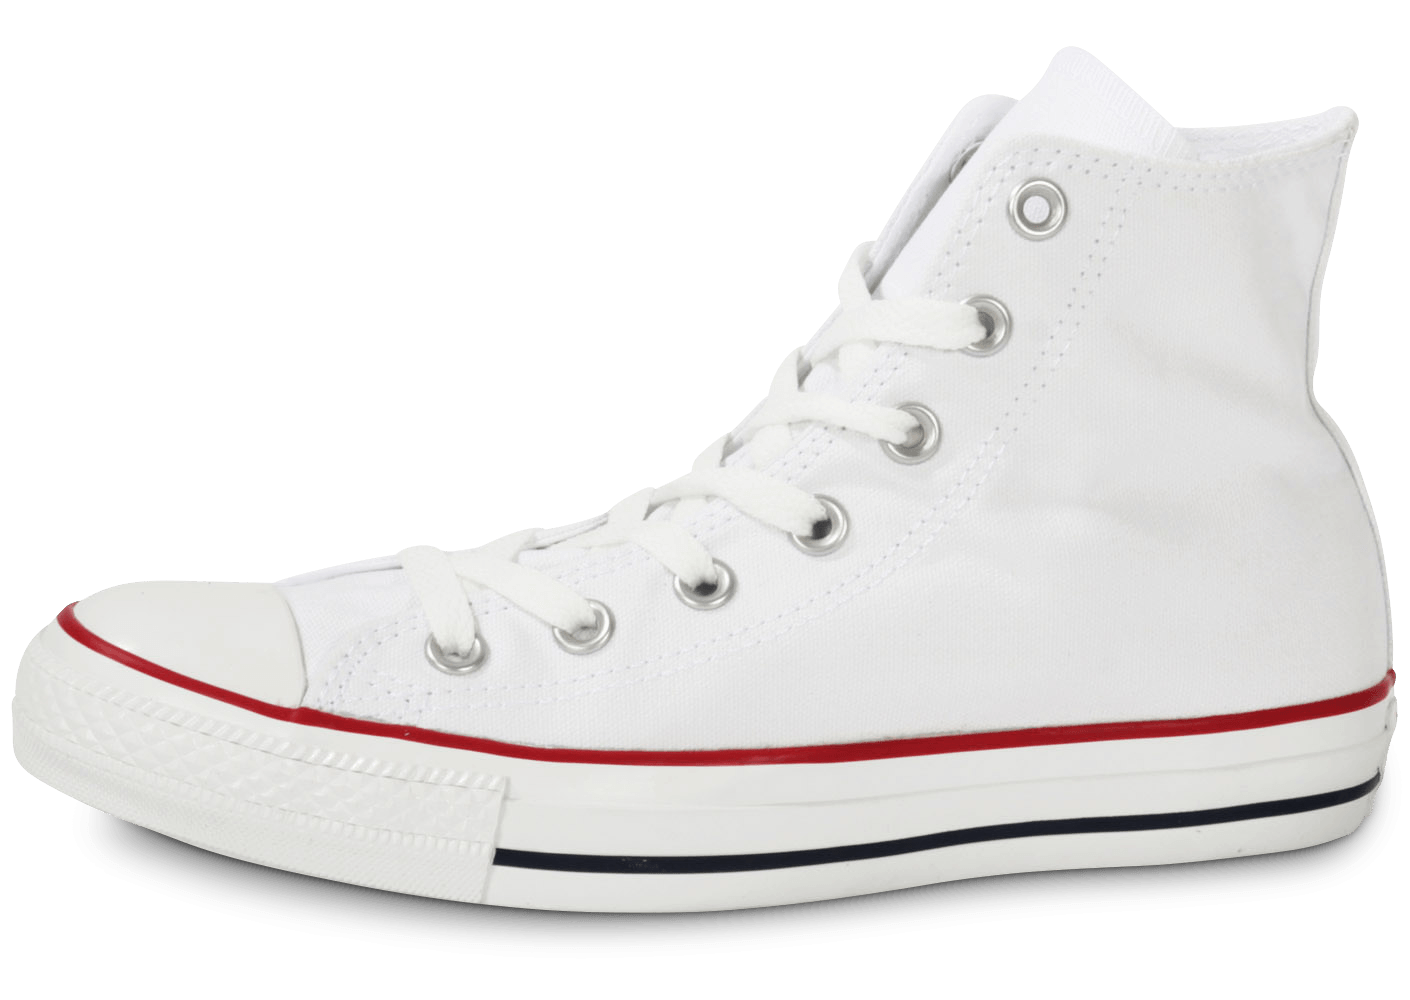 converse chuck taylor all star hi blanche chaussures homme chausport. Black Bedroom Furniture Sets. Home Design Ideas